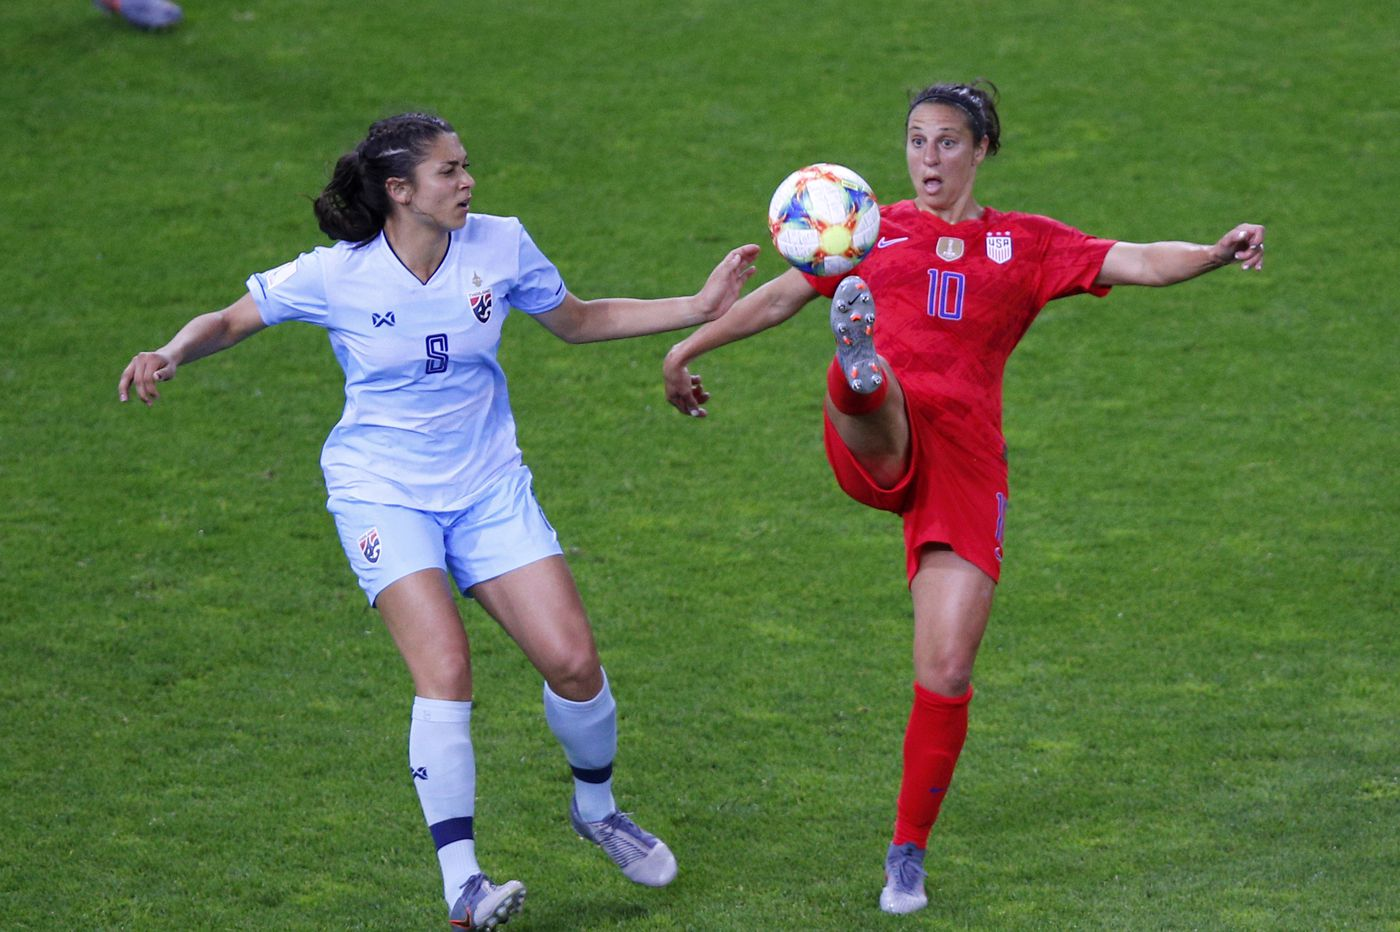 Carli Lloyd raring to go for USWNT's next World Cup game, against Chile in Paris